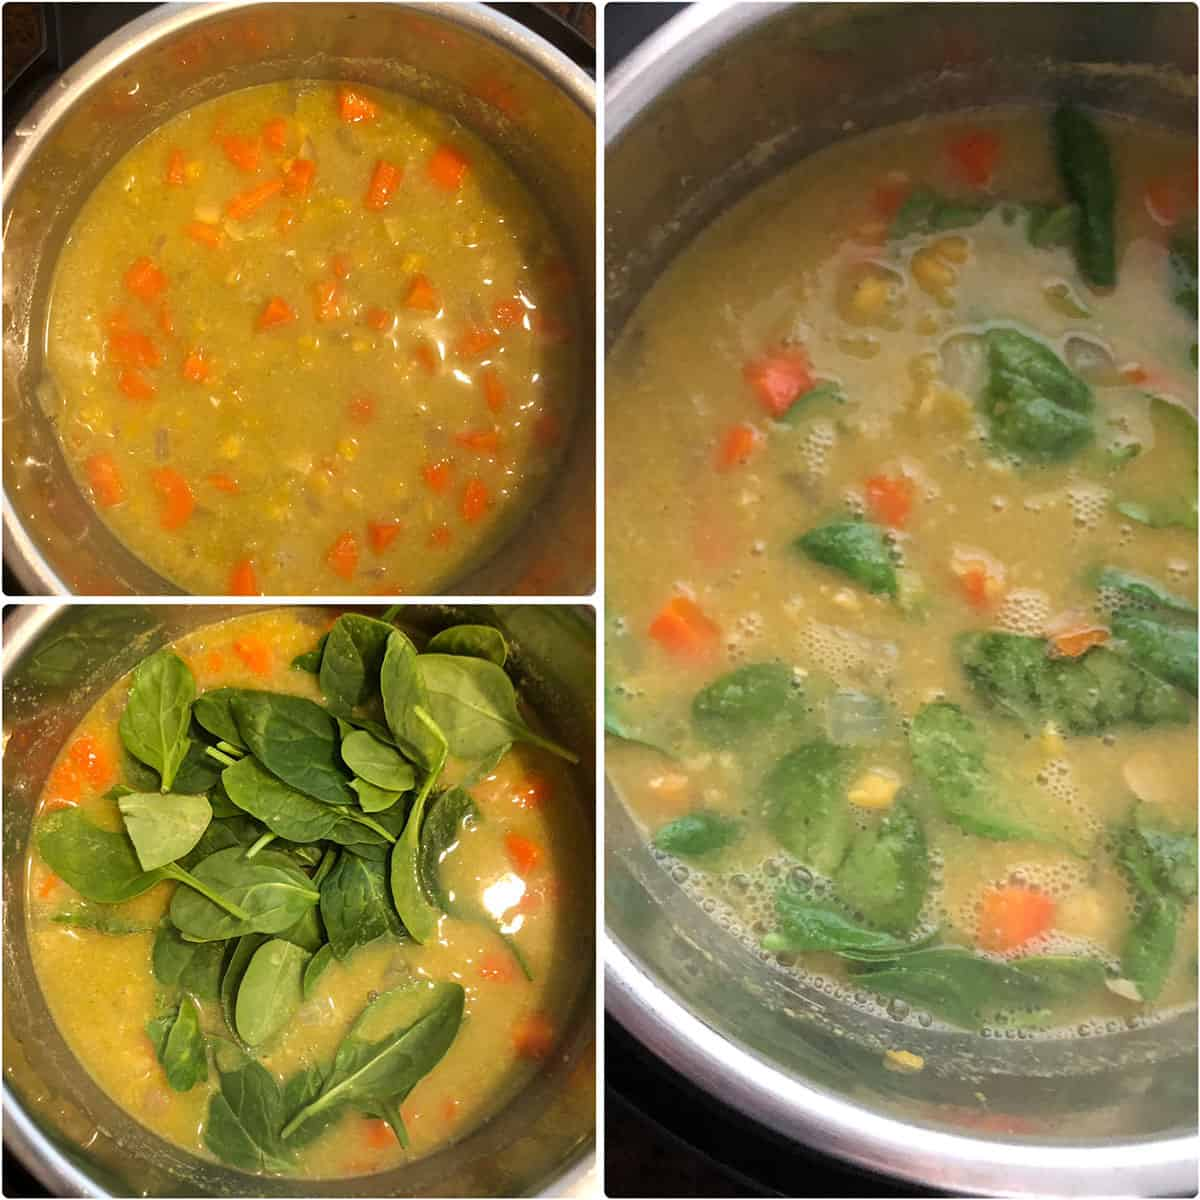 Adding fresh spinach leaves added to cooked soup